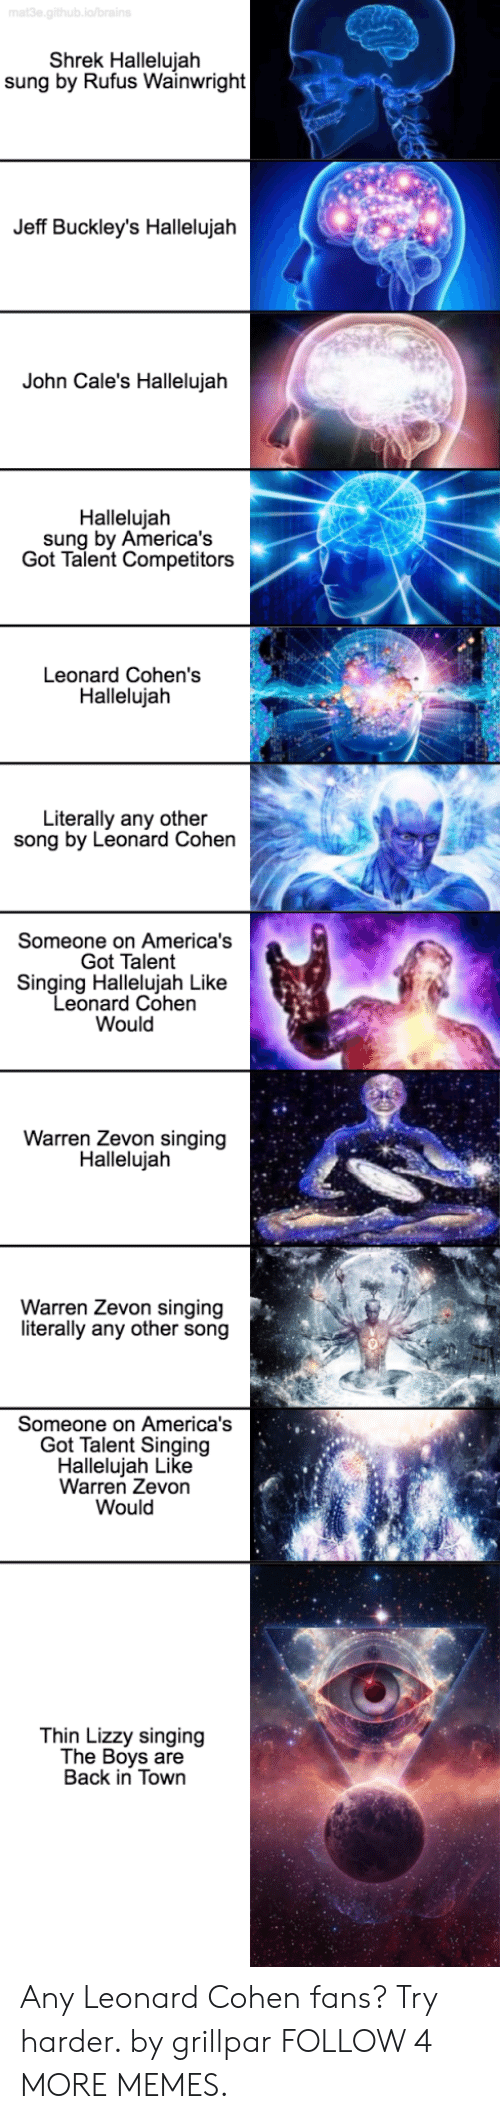 leonard cohen: mat3e.github.ia/brains  Shrek Hallelujah  sung by Rufus Wainwright  Jeff Buckley's Hallelujah  John Cale's Hallelujah  Hallelujah  sung by America's  Got Talent Competitors  Leonard Cohen's  Hallelujah  Literally any other  song by Leonard Cohen  Someone on America's  Got Talent  Singing Hallelujah Like  Leonard Cohen  Would  Warren Zevon singing  Hallelujah  Warren Zevon singing  literally any other song  Someone on America's  Got Talent Singing  Hallelujah Like  Warren Zevon  Would  Thin Lizzy singing  The Boys are  Back in Town Any Leonard Cohen fans? Try harder. by grillpar FOLLOW 4 MORE MEMES.